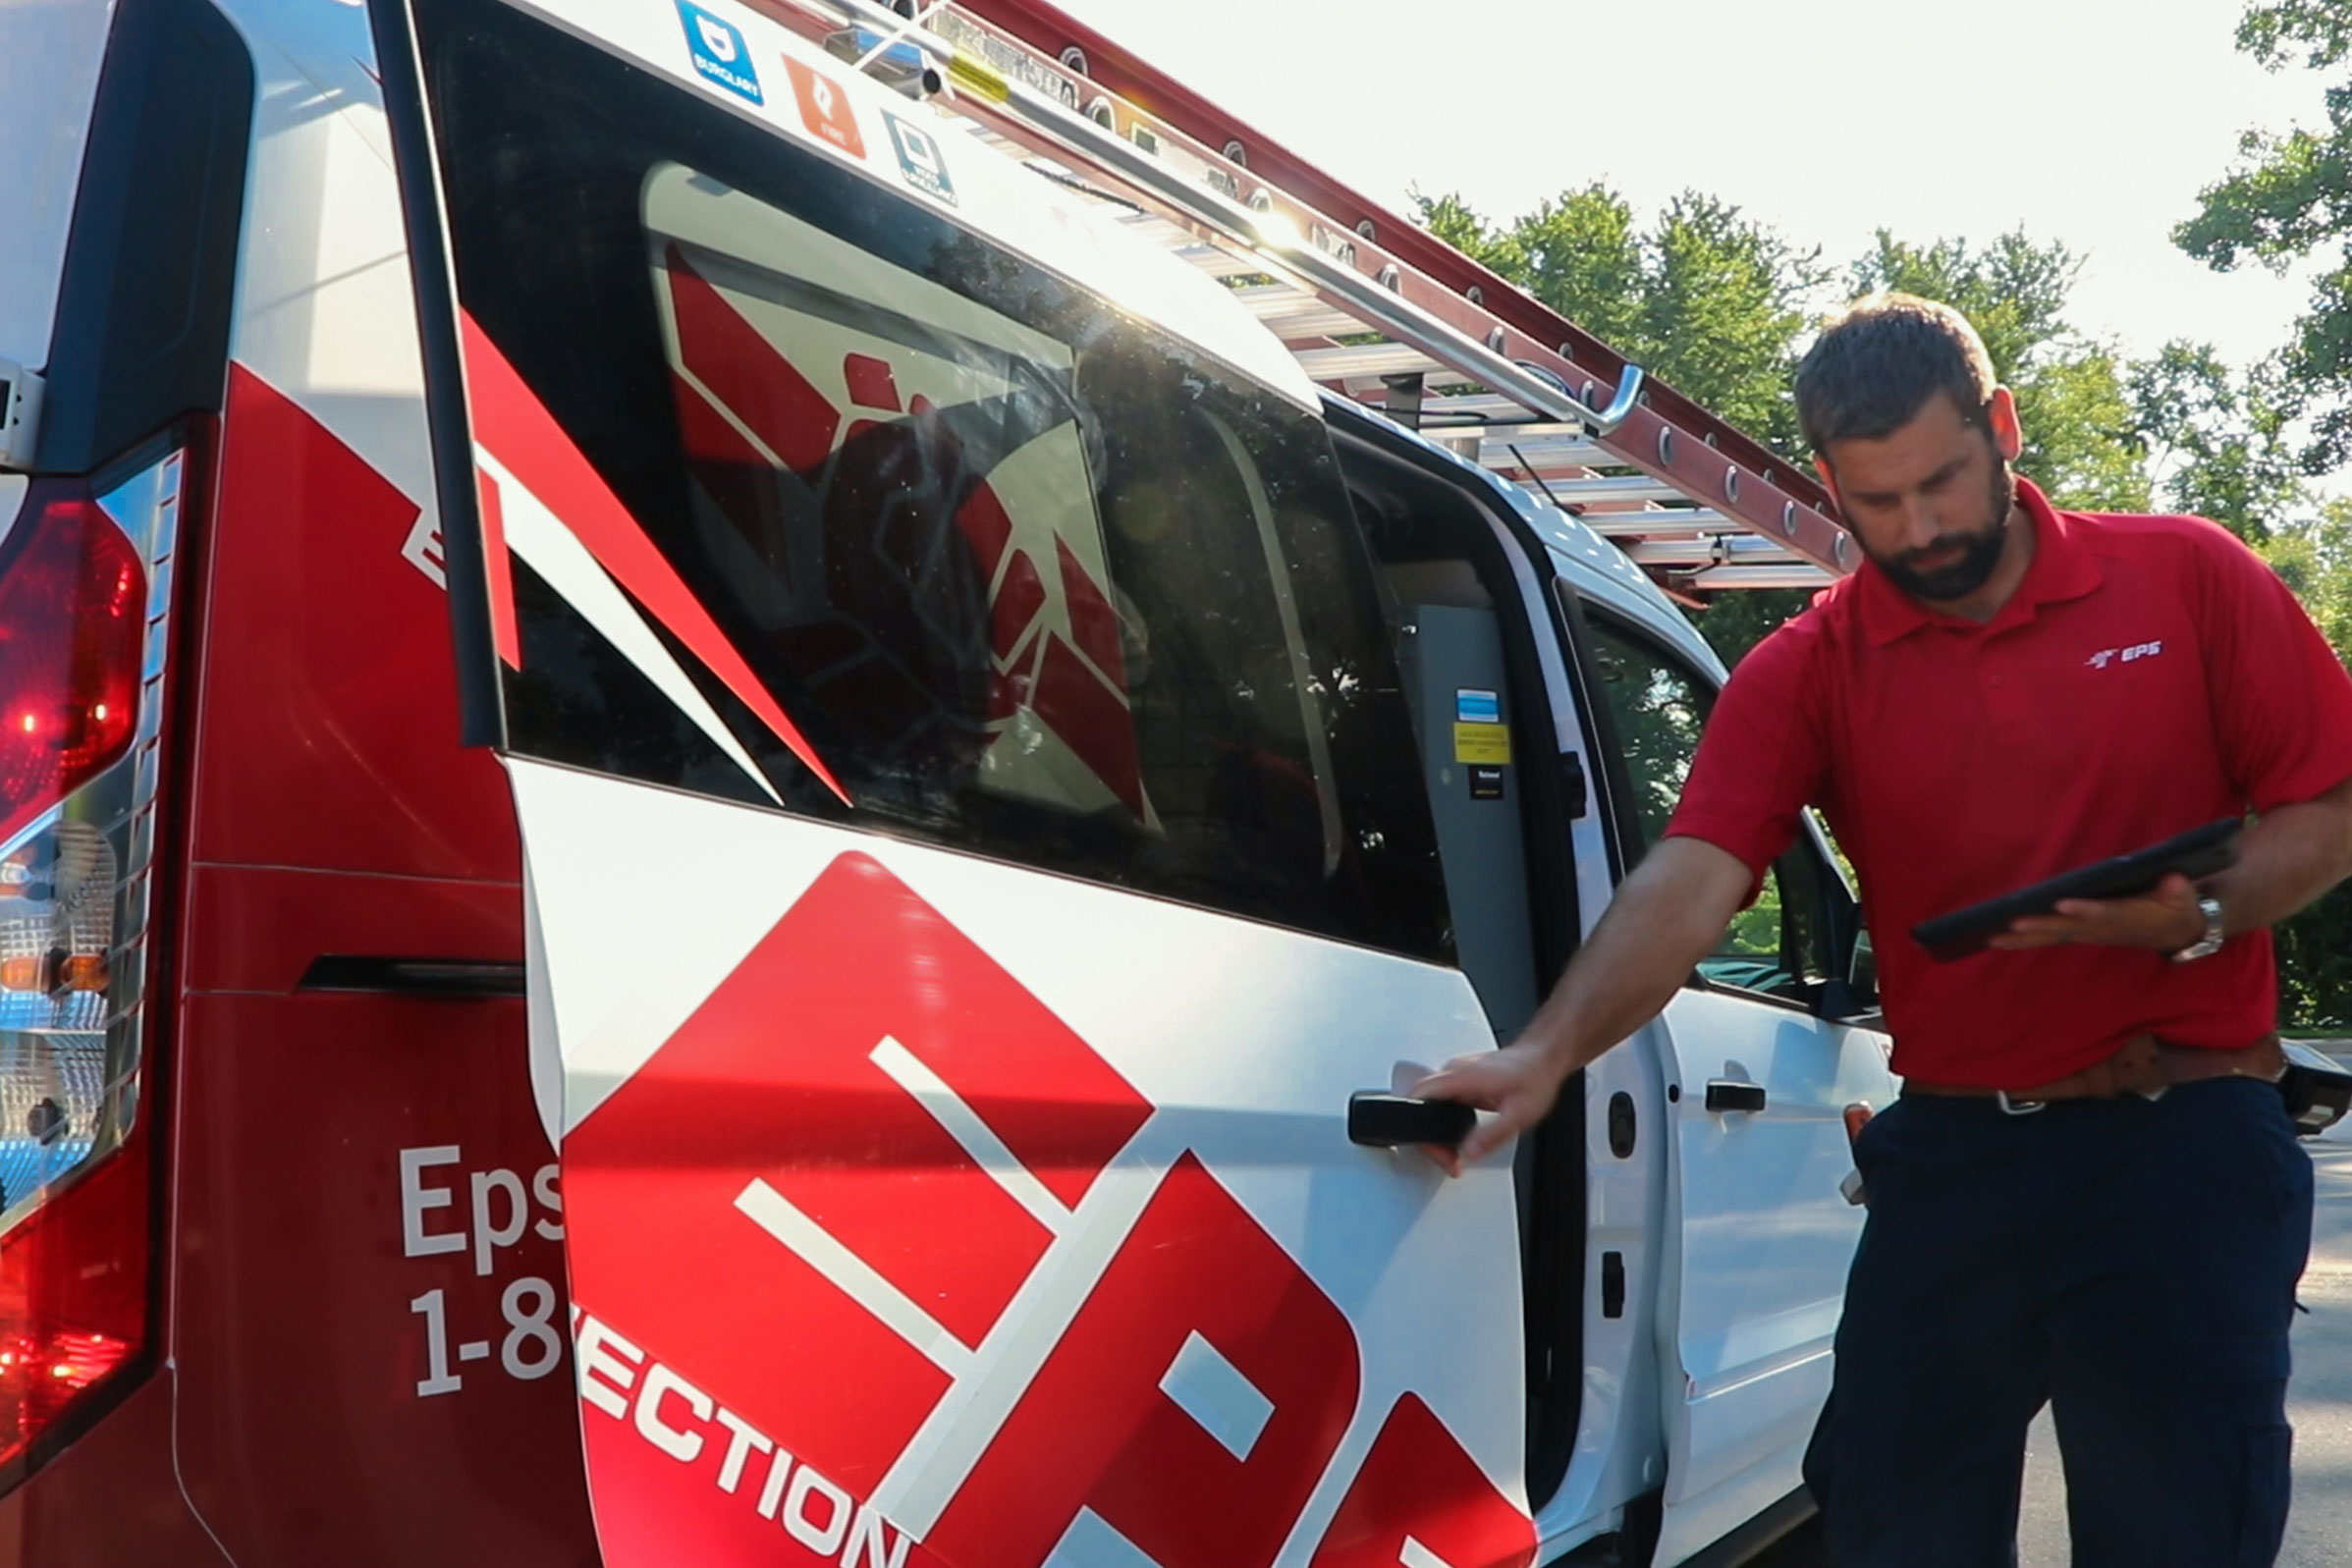 eps-tech-and-truck